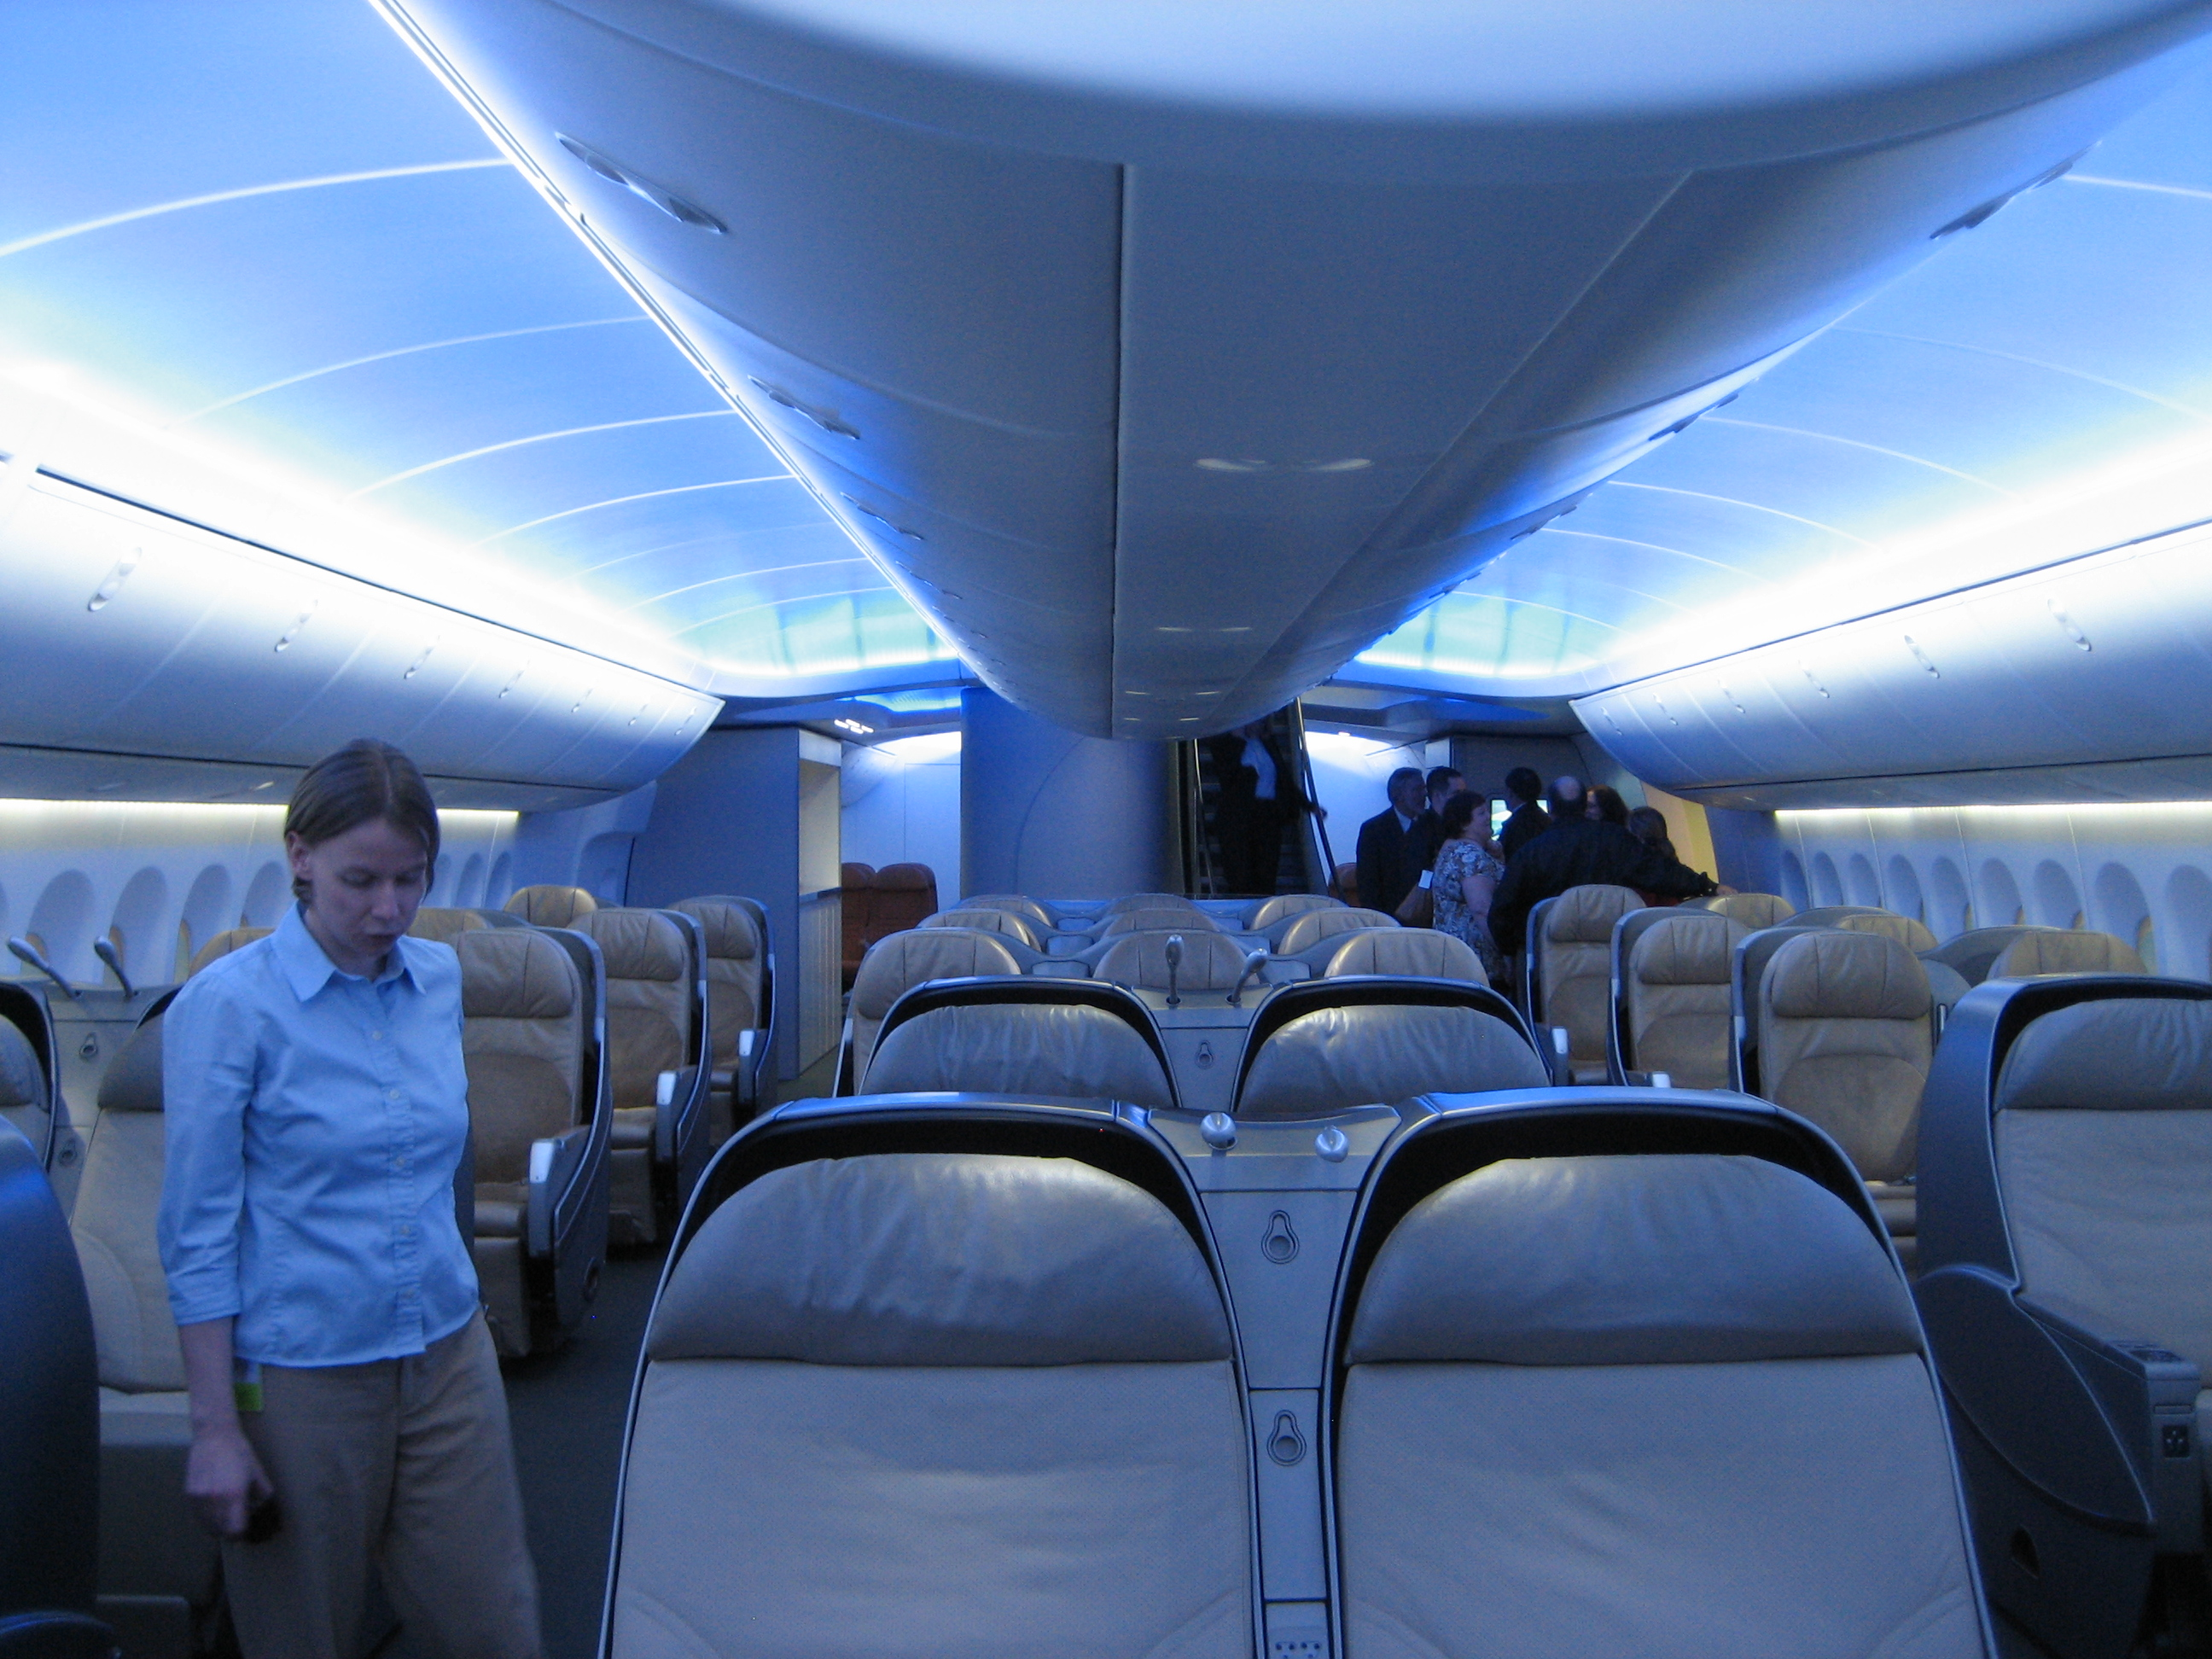 File:Interior Boeing 747-8I main deck.jpg - Wikimedia Commons